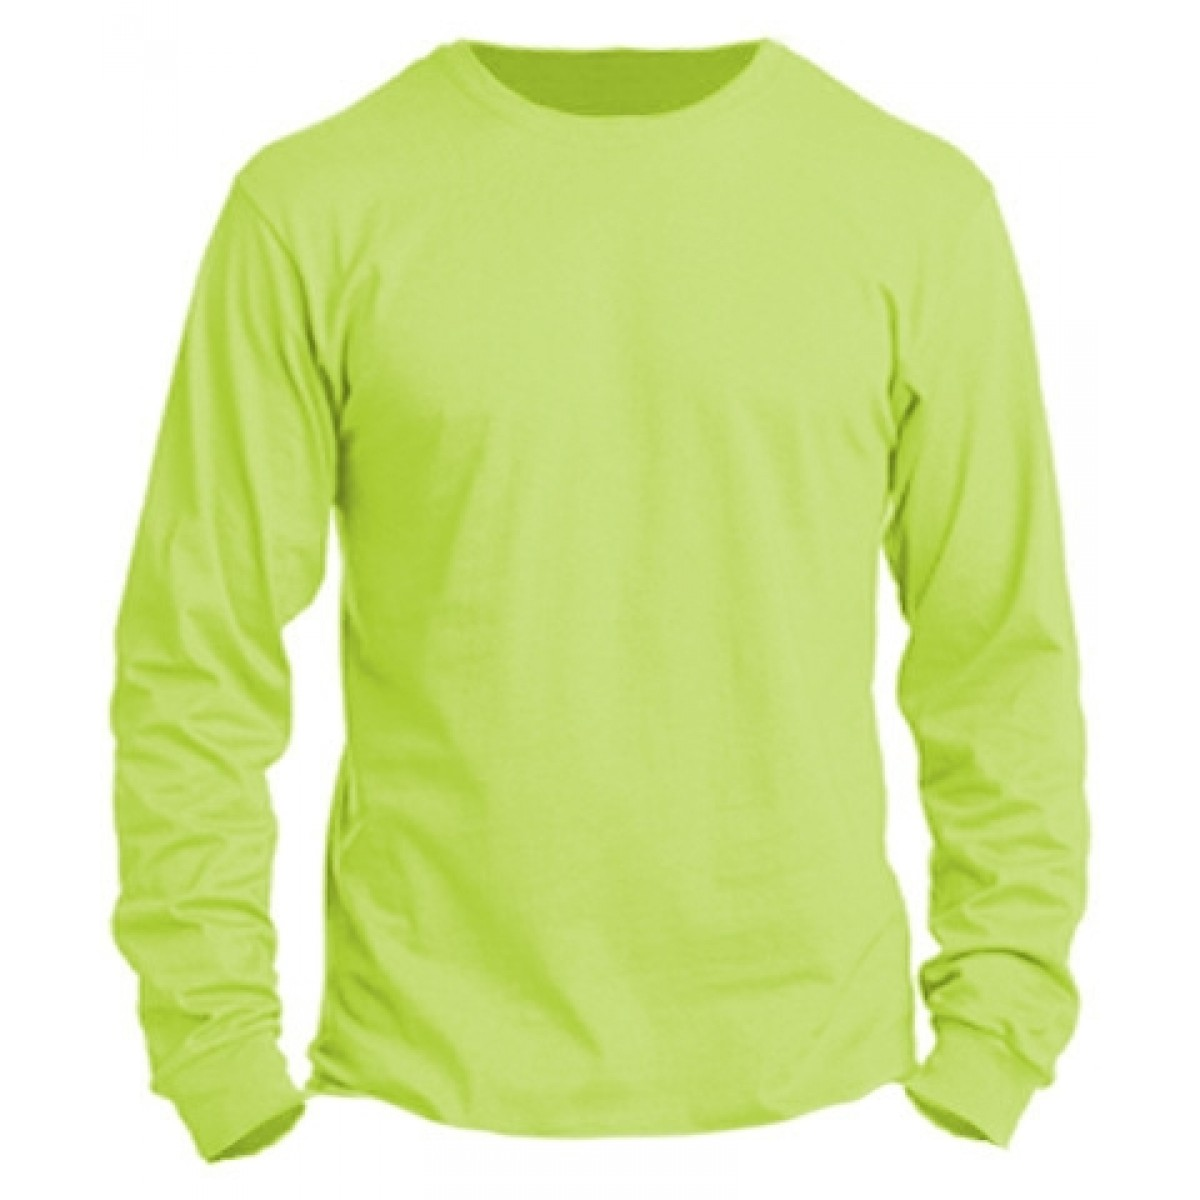 Basic Long Sleeve Crew Neck -Neon Green-M